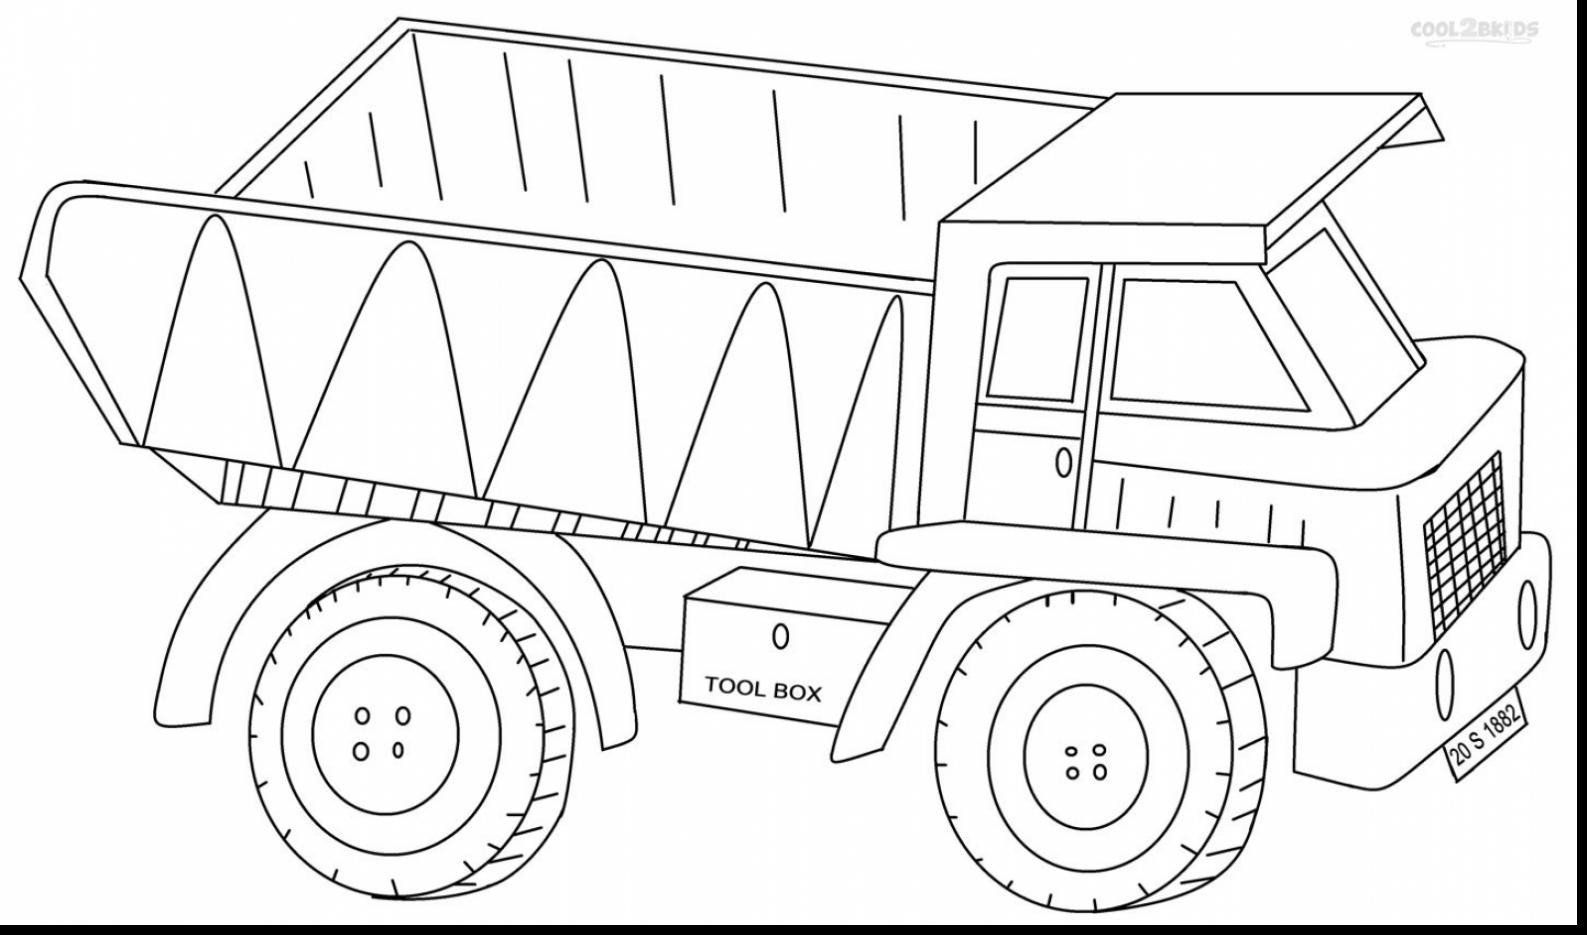 Garbage Truck Coloring Page Unique Semi Truck Coloring Pages Inspirational Semi Truck Coloring In 2020 Truck Coloring Pages Monster Truck Coloring Pages Coloring Pages